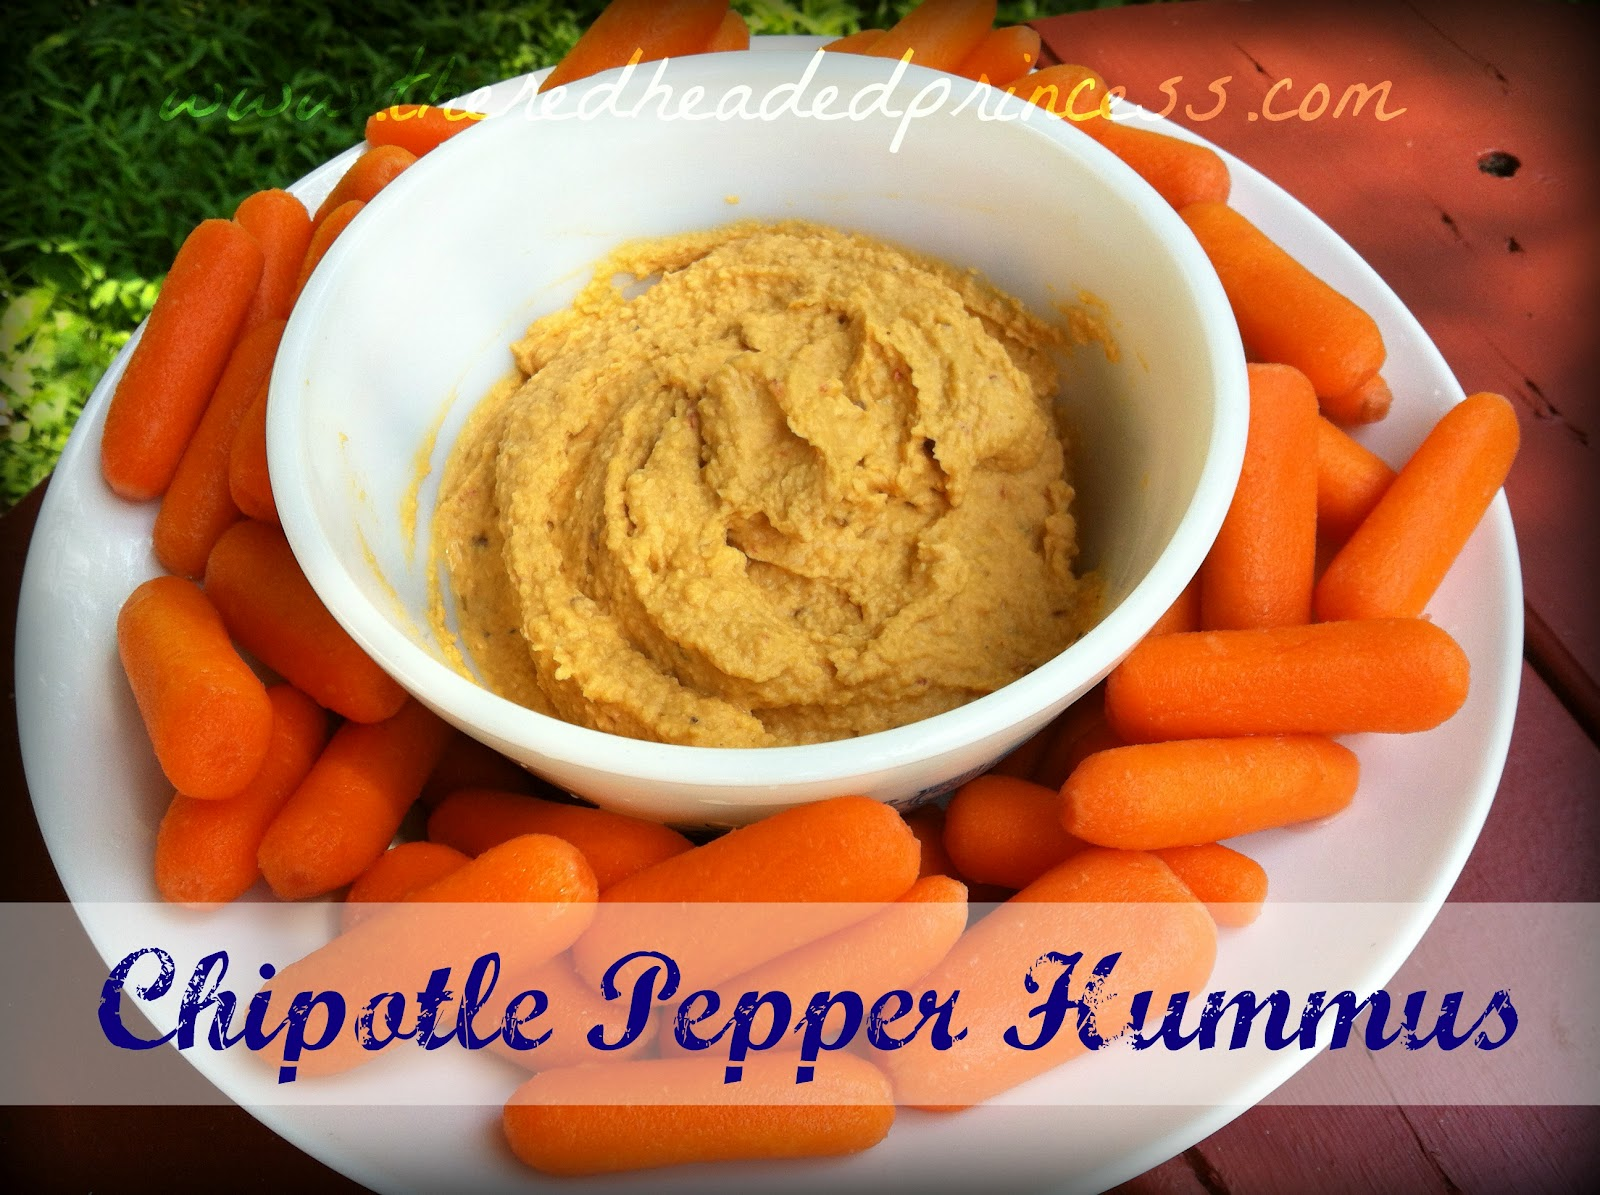 Chipotle Pepper Hummus